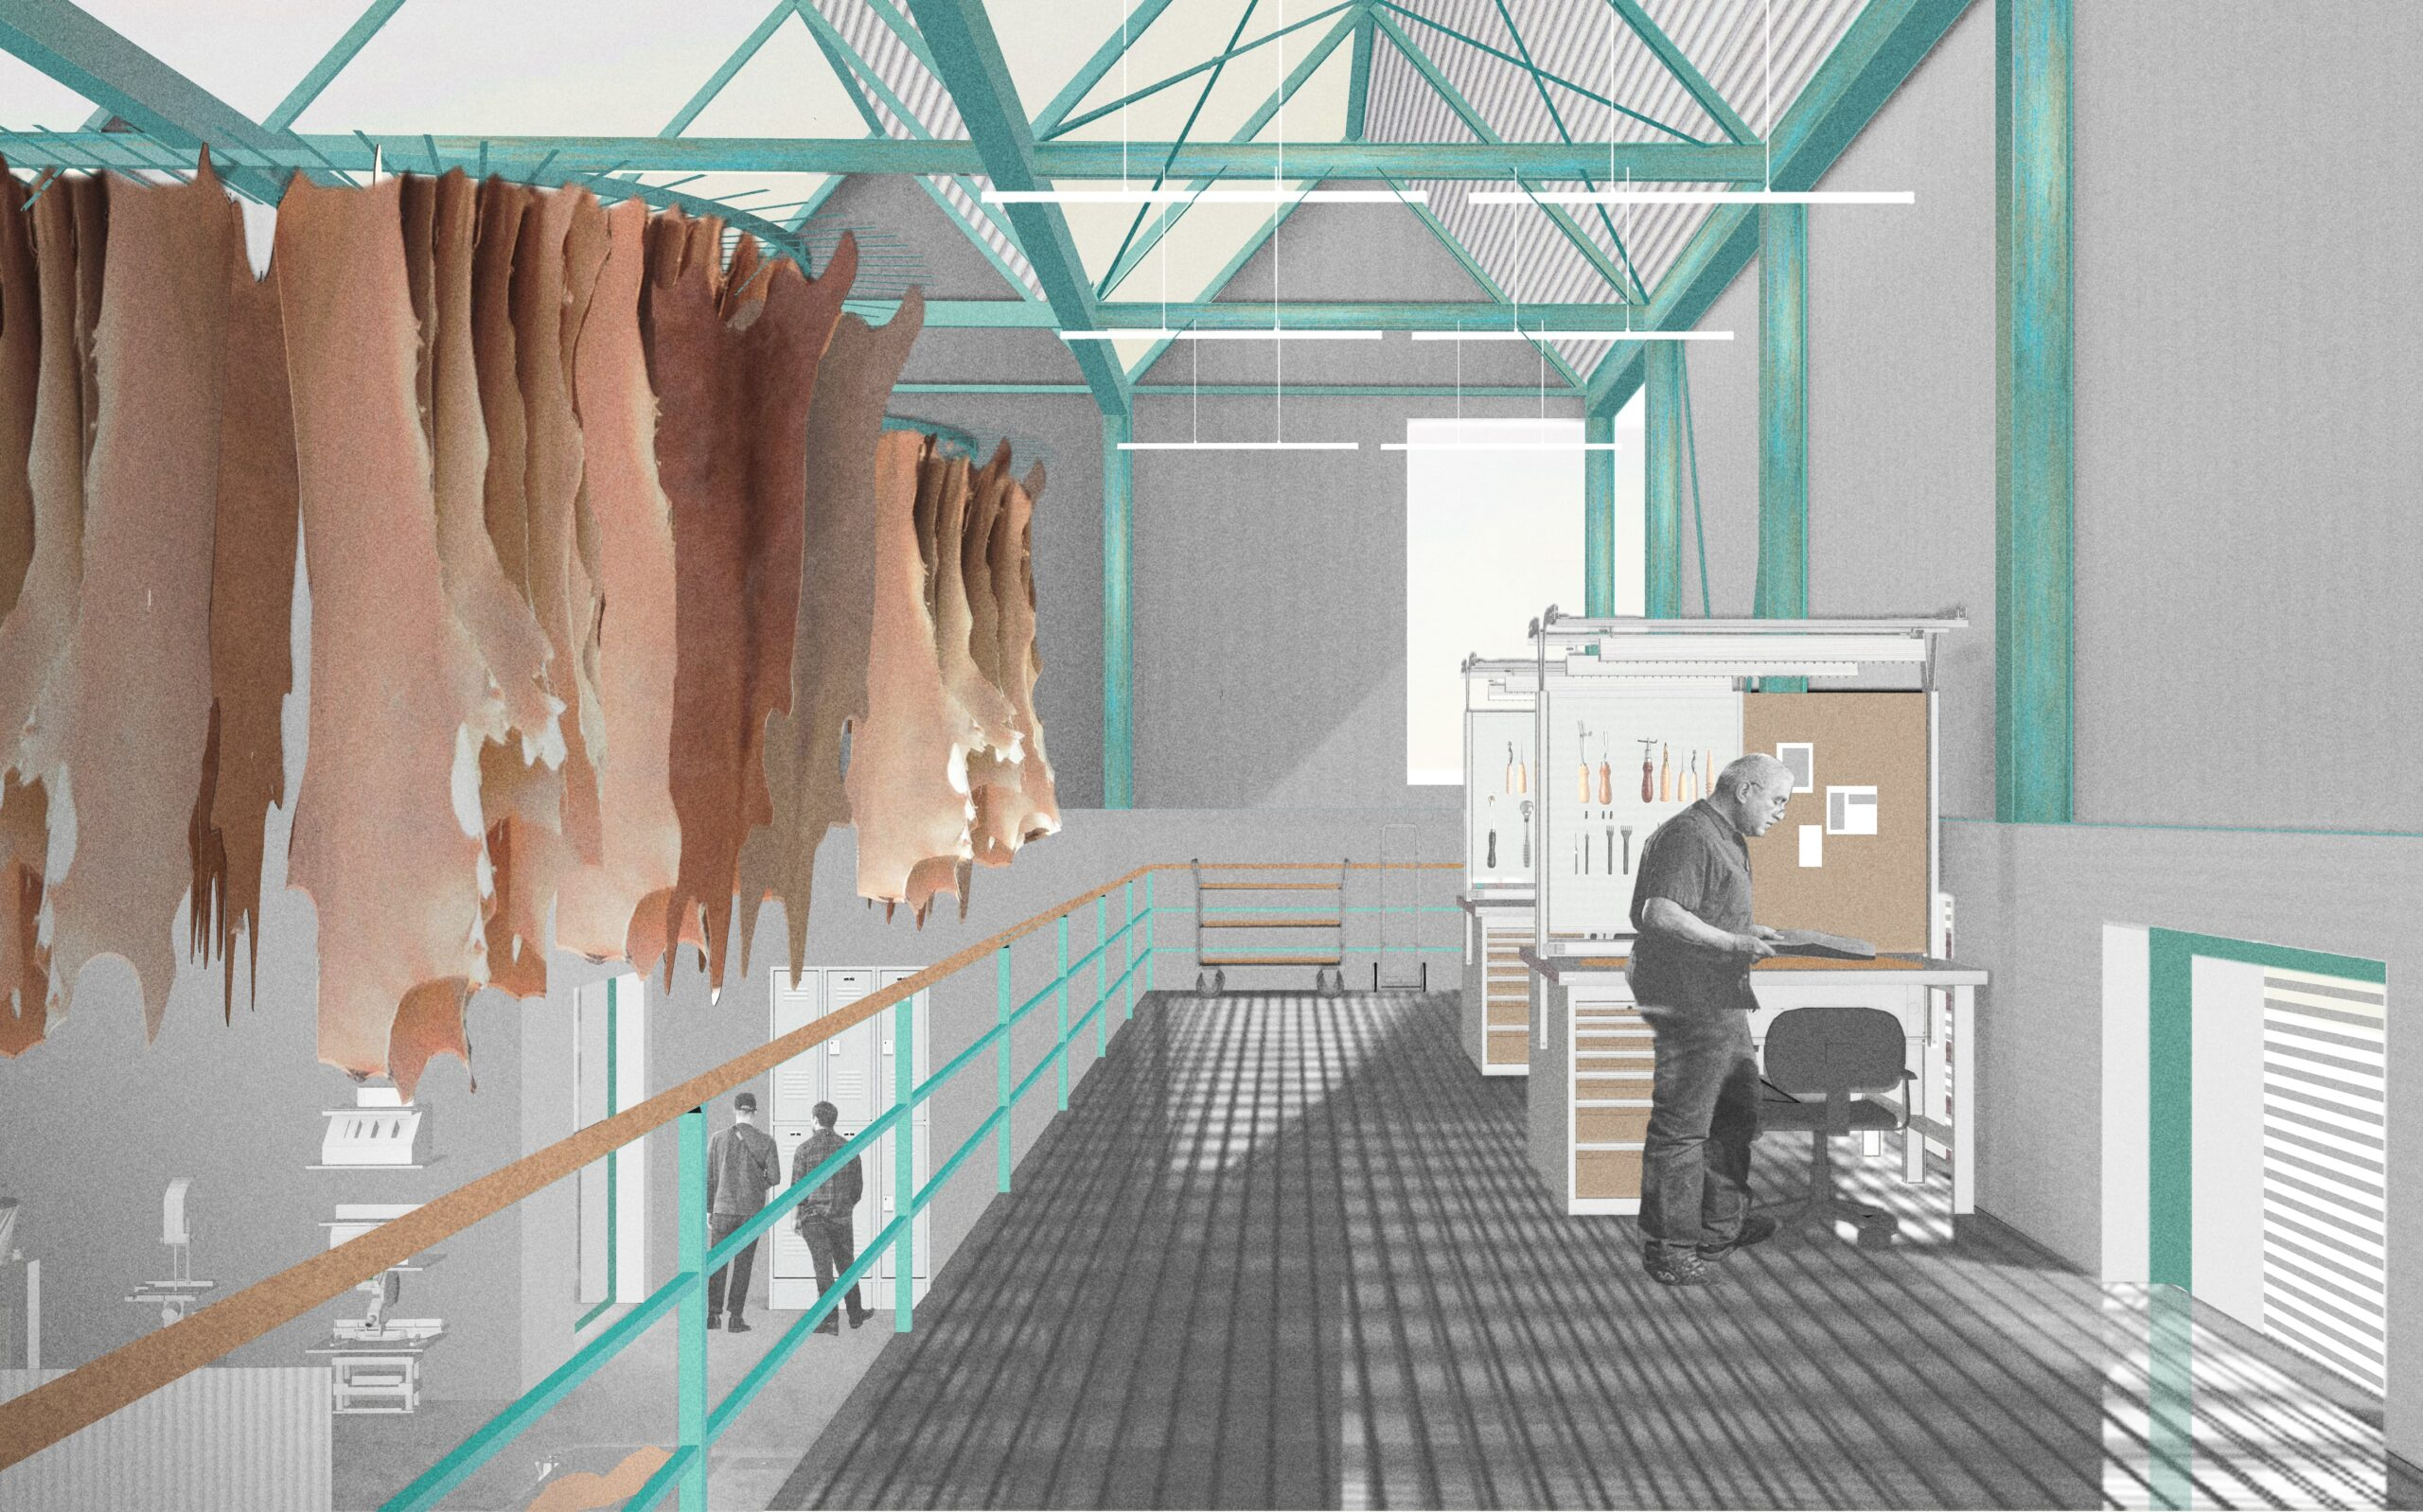 a render illustrating the process of leatherworks inside the manufacturing hall. there is leather hanging to the left of the image  and the structure is emphasised in teal